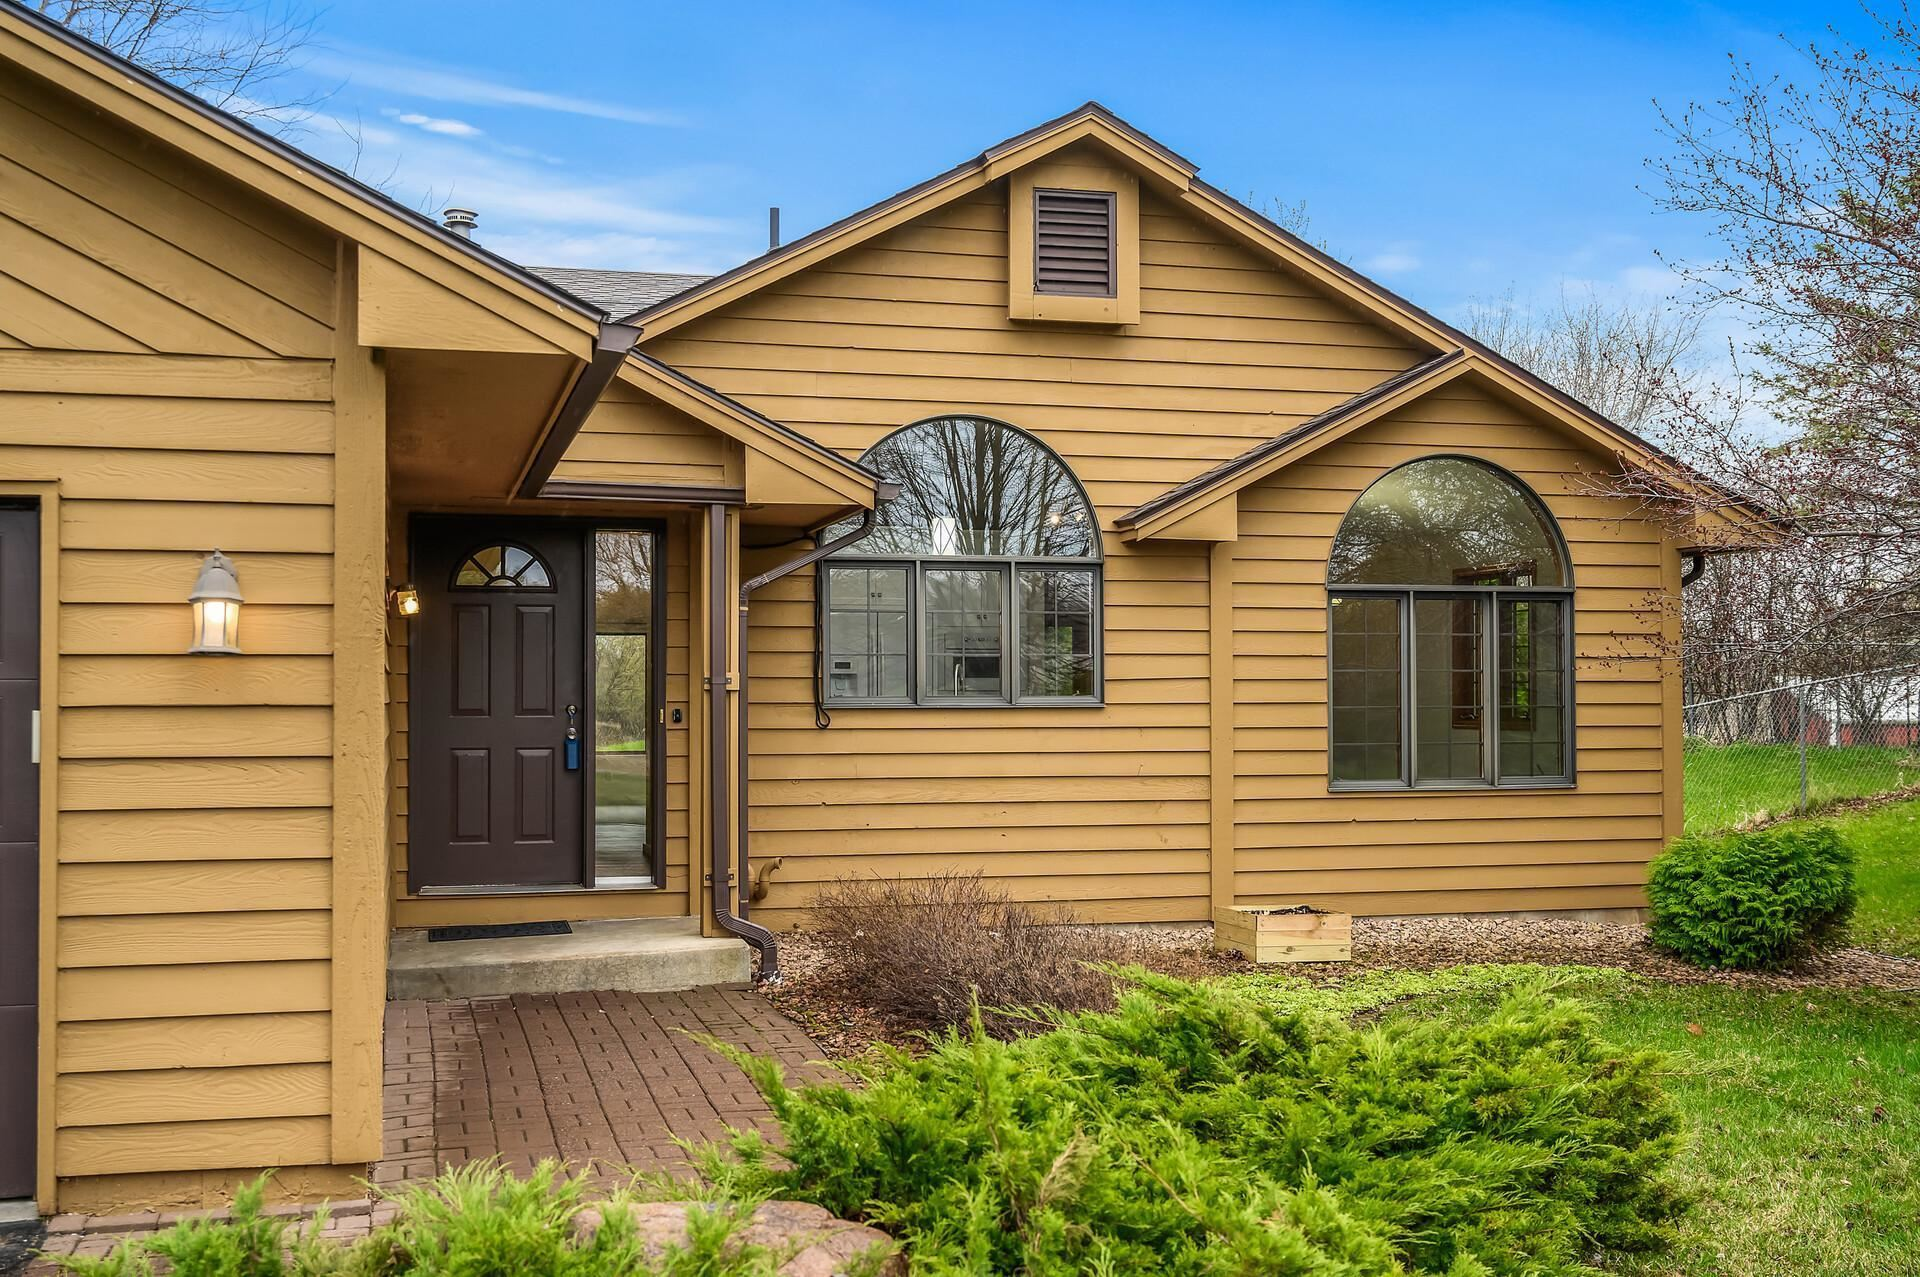 Photo of 8511 240th Street E, Lakeville, MN 55044 (MLS # 5736197)